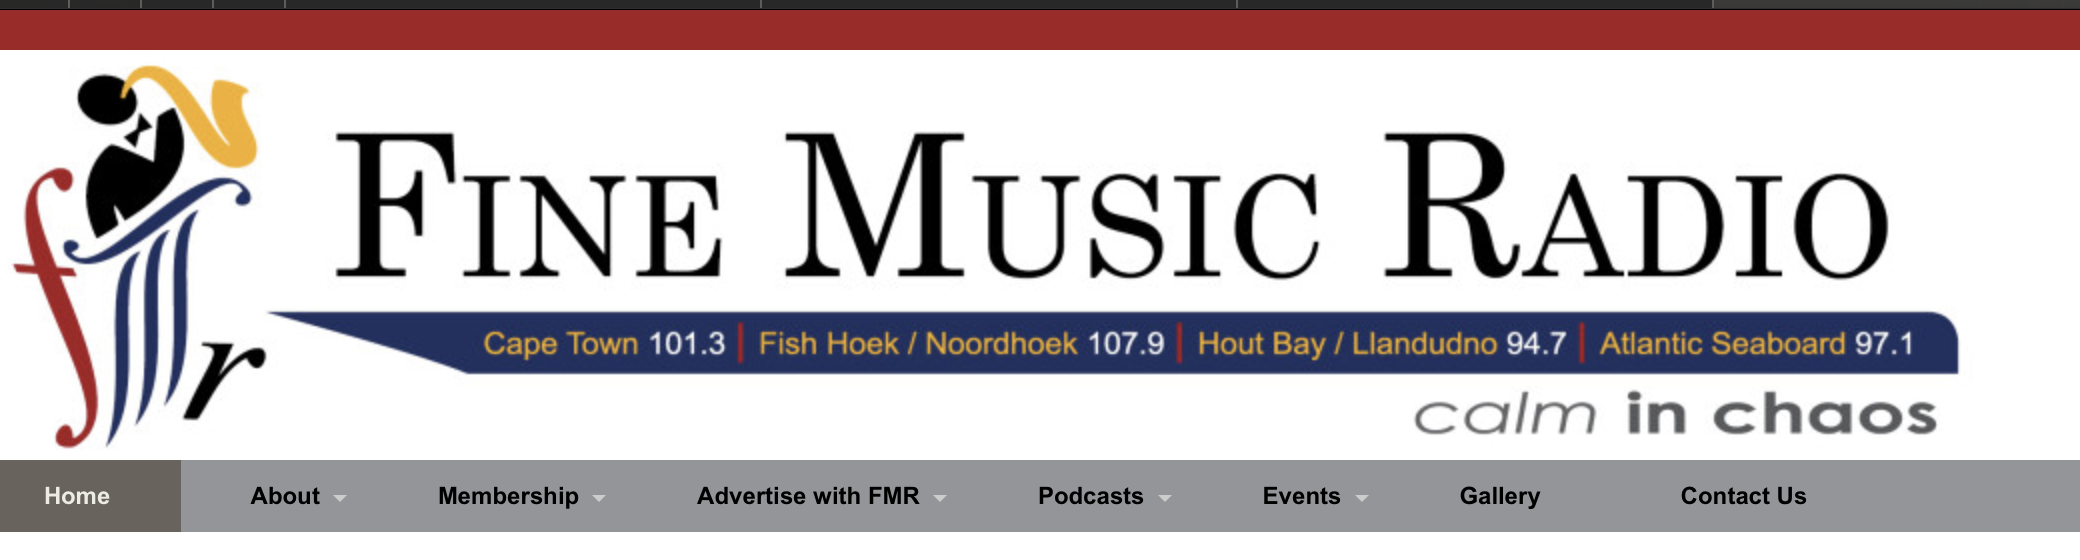 Listen in to my Fine Music Radio interview about Brian's Banting Kitchen Pop-Up in Pringle Bay.